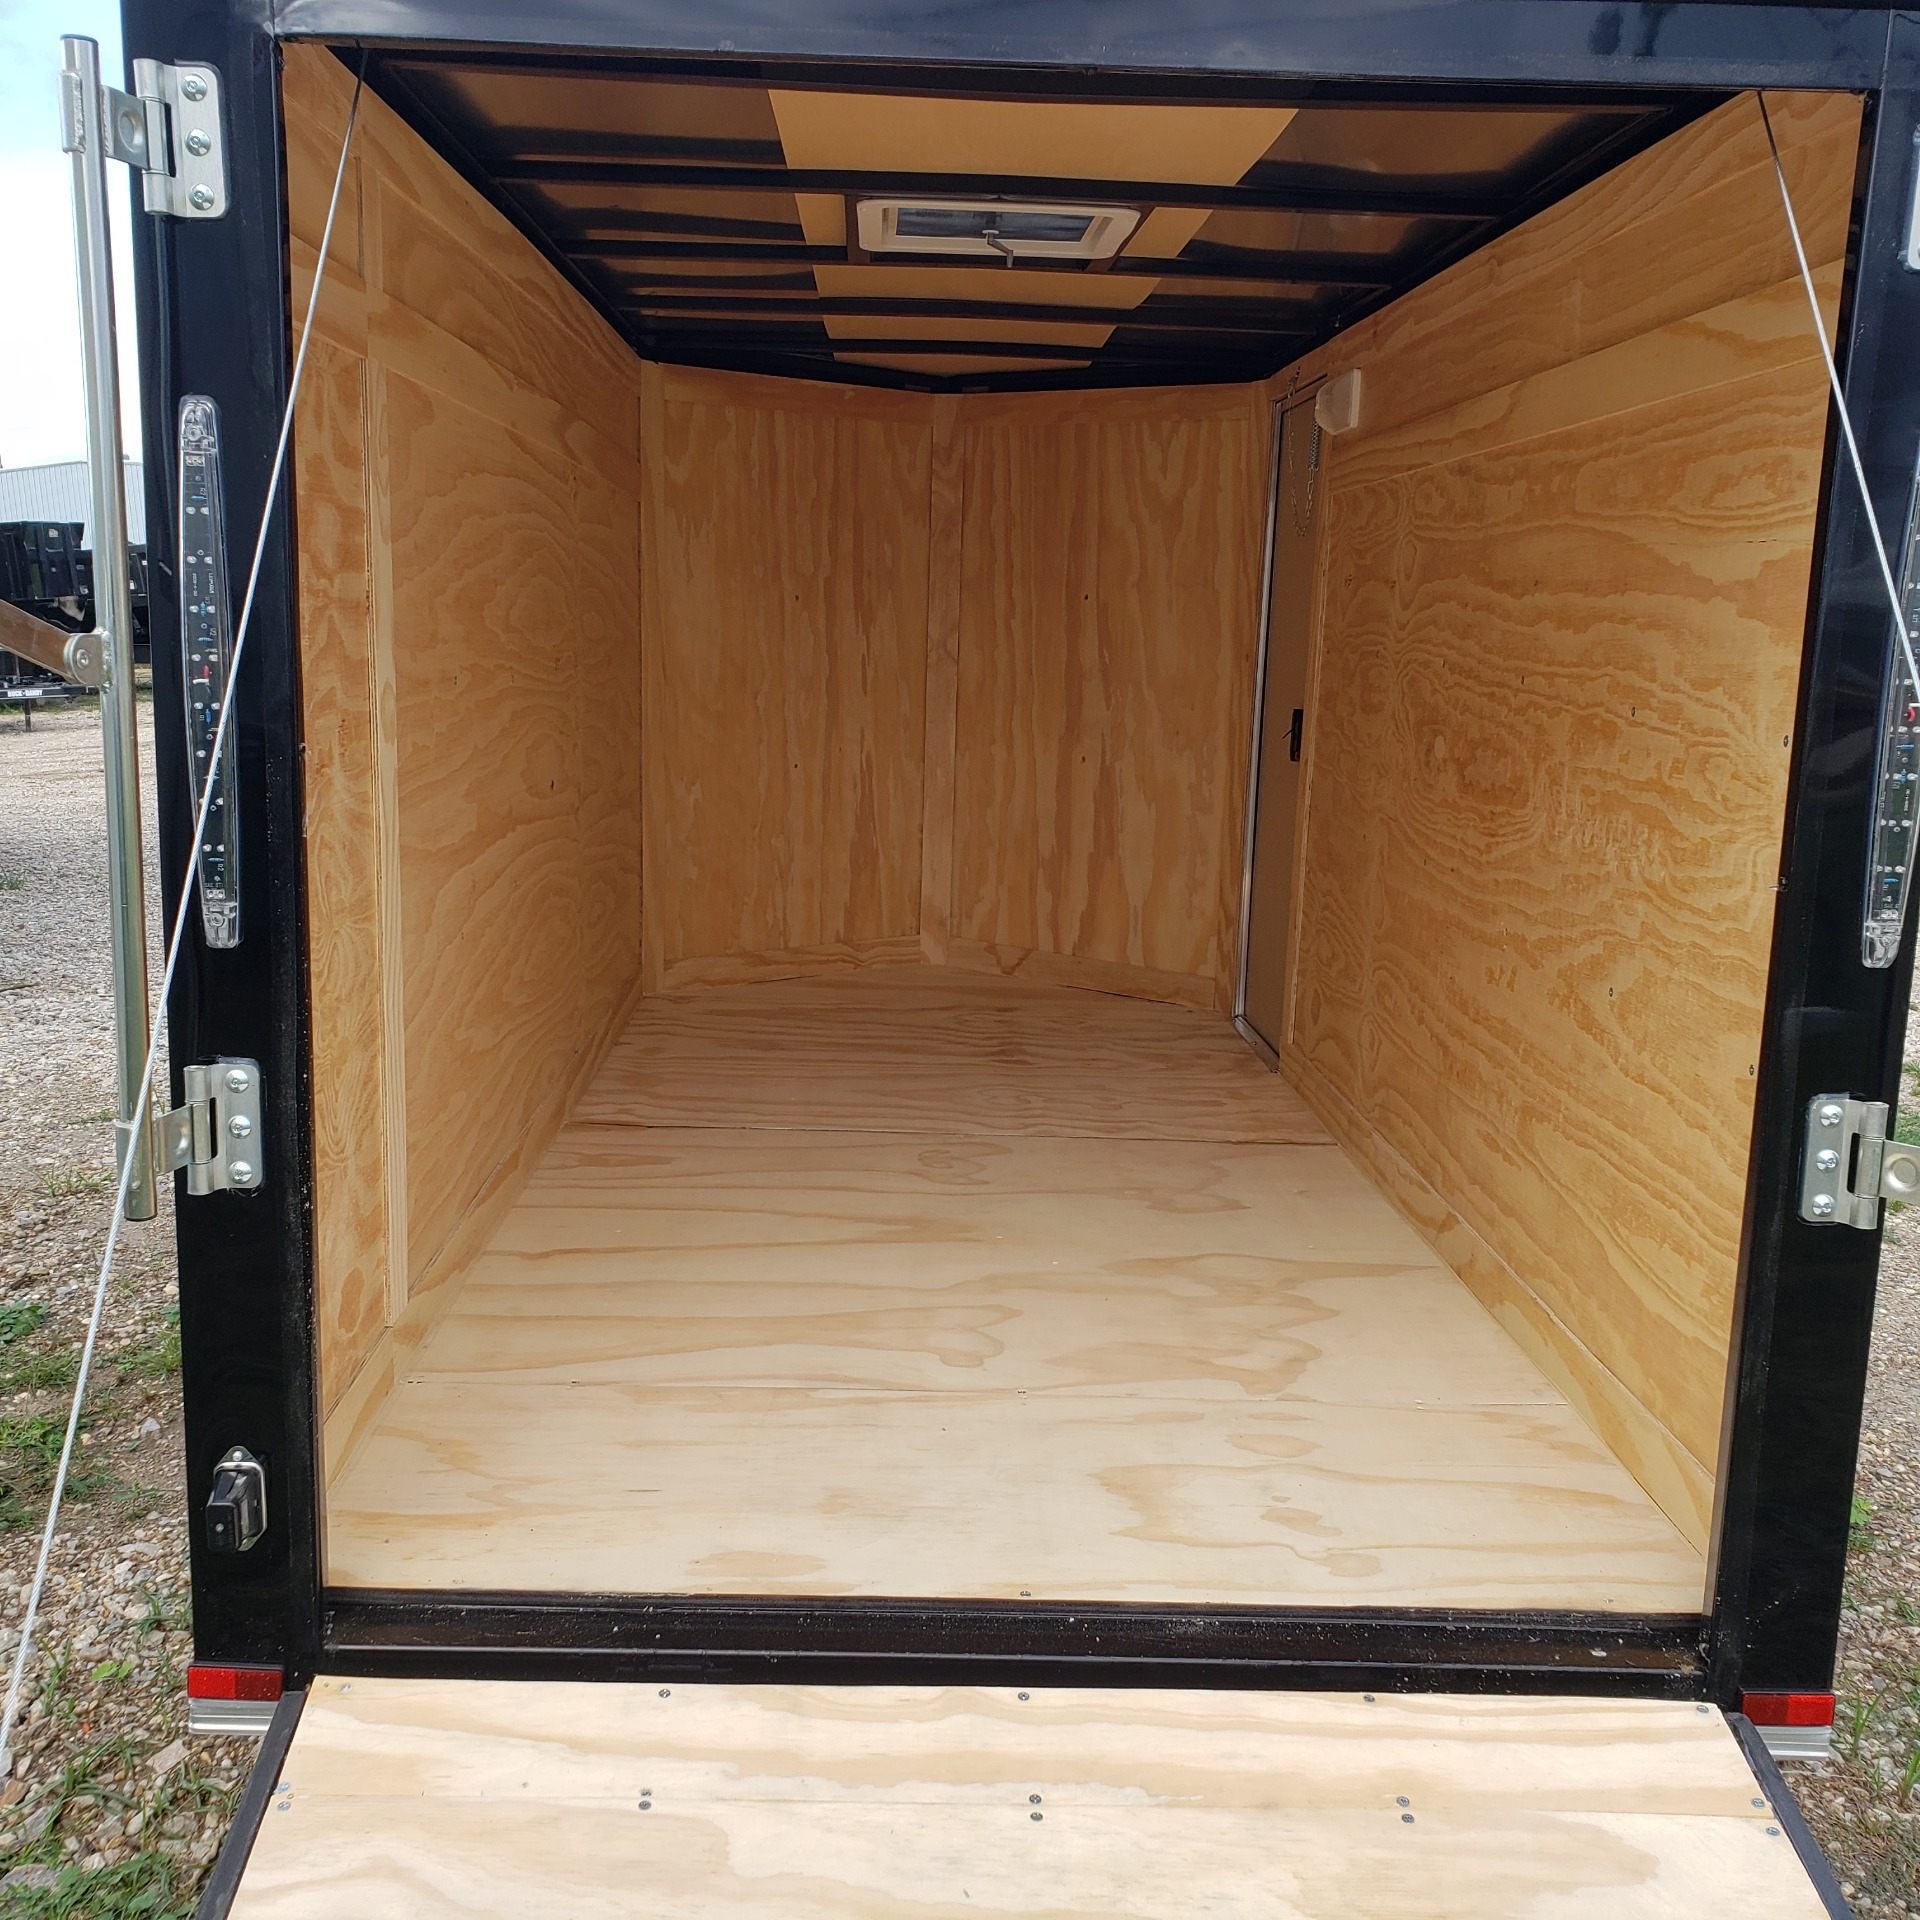 2020 Spartan Trailers 5 X 10 SPARTAN ENCLOSED TRAILER in Pearl River, Louisiana - Photo 5